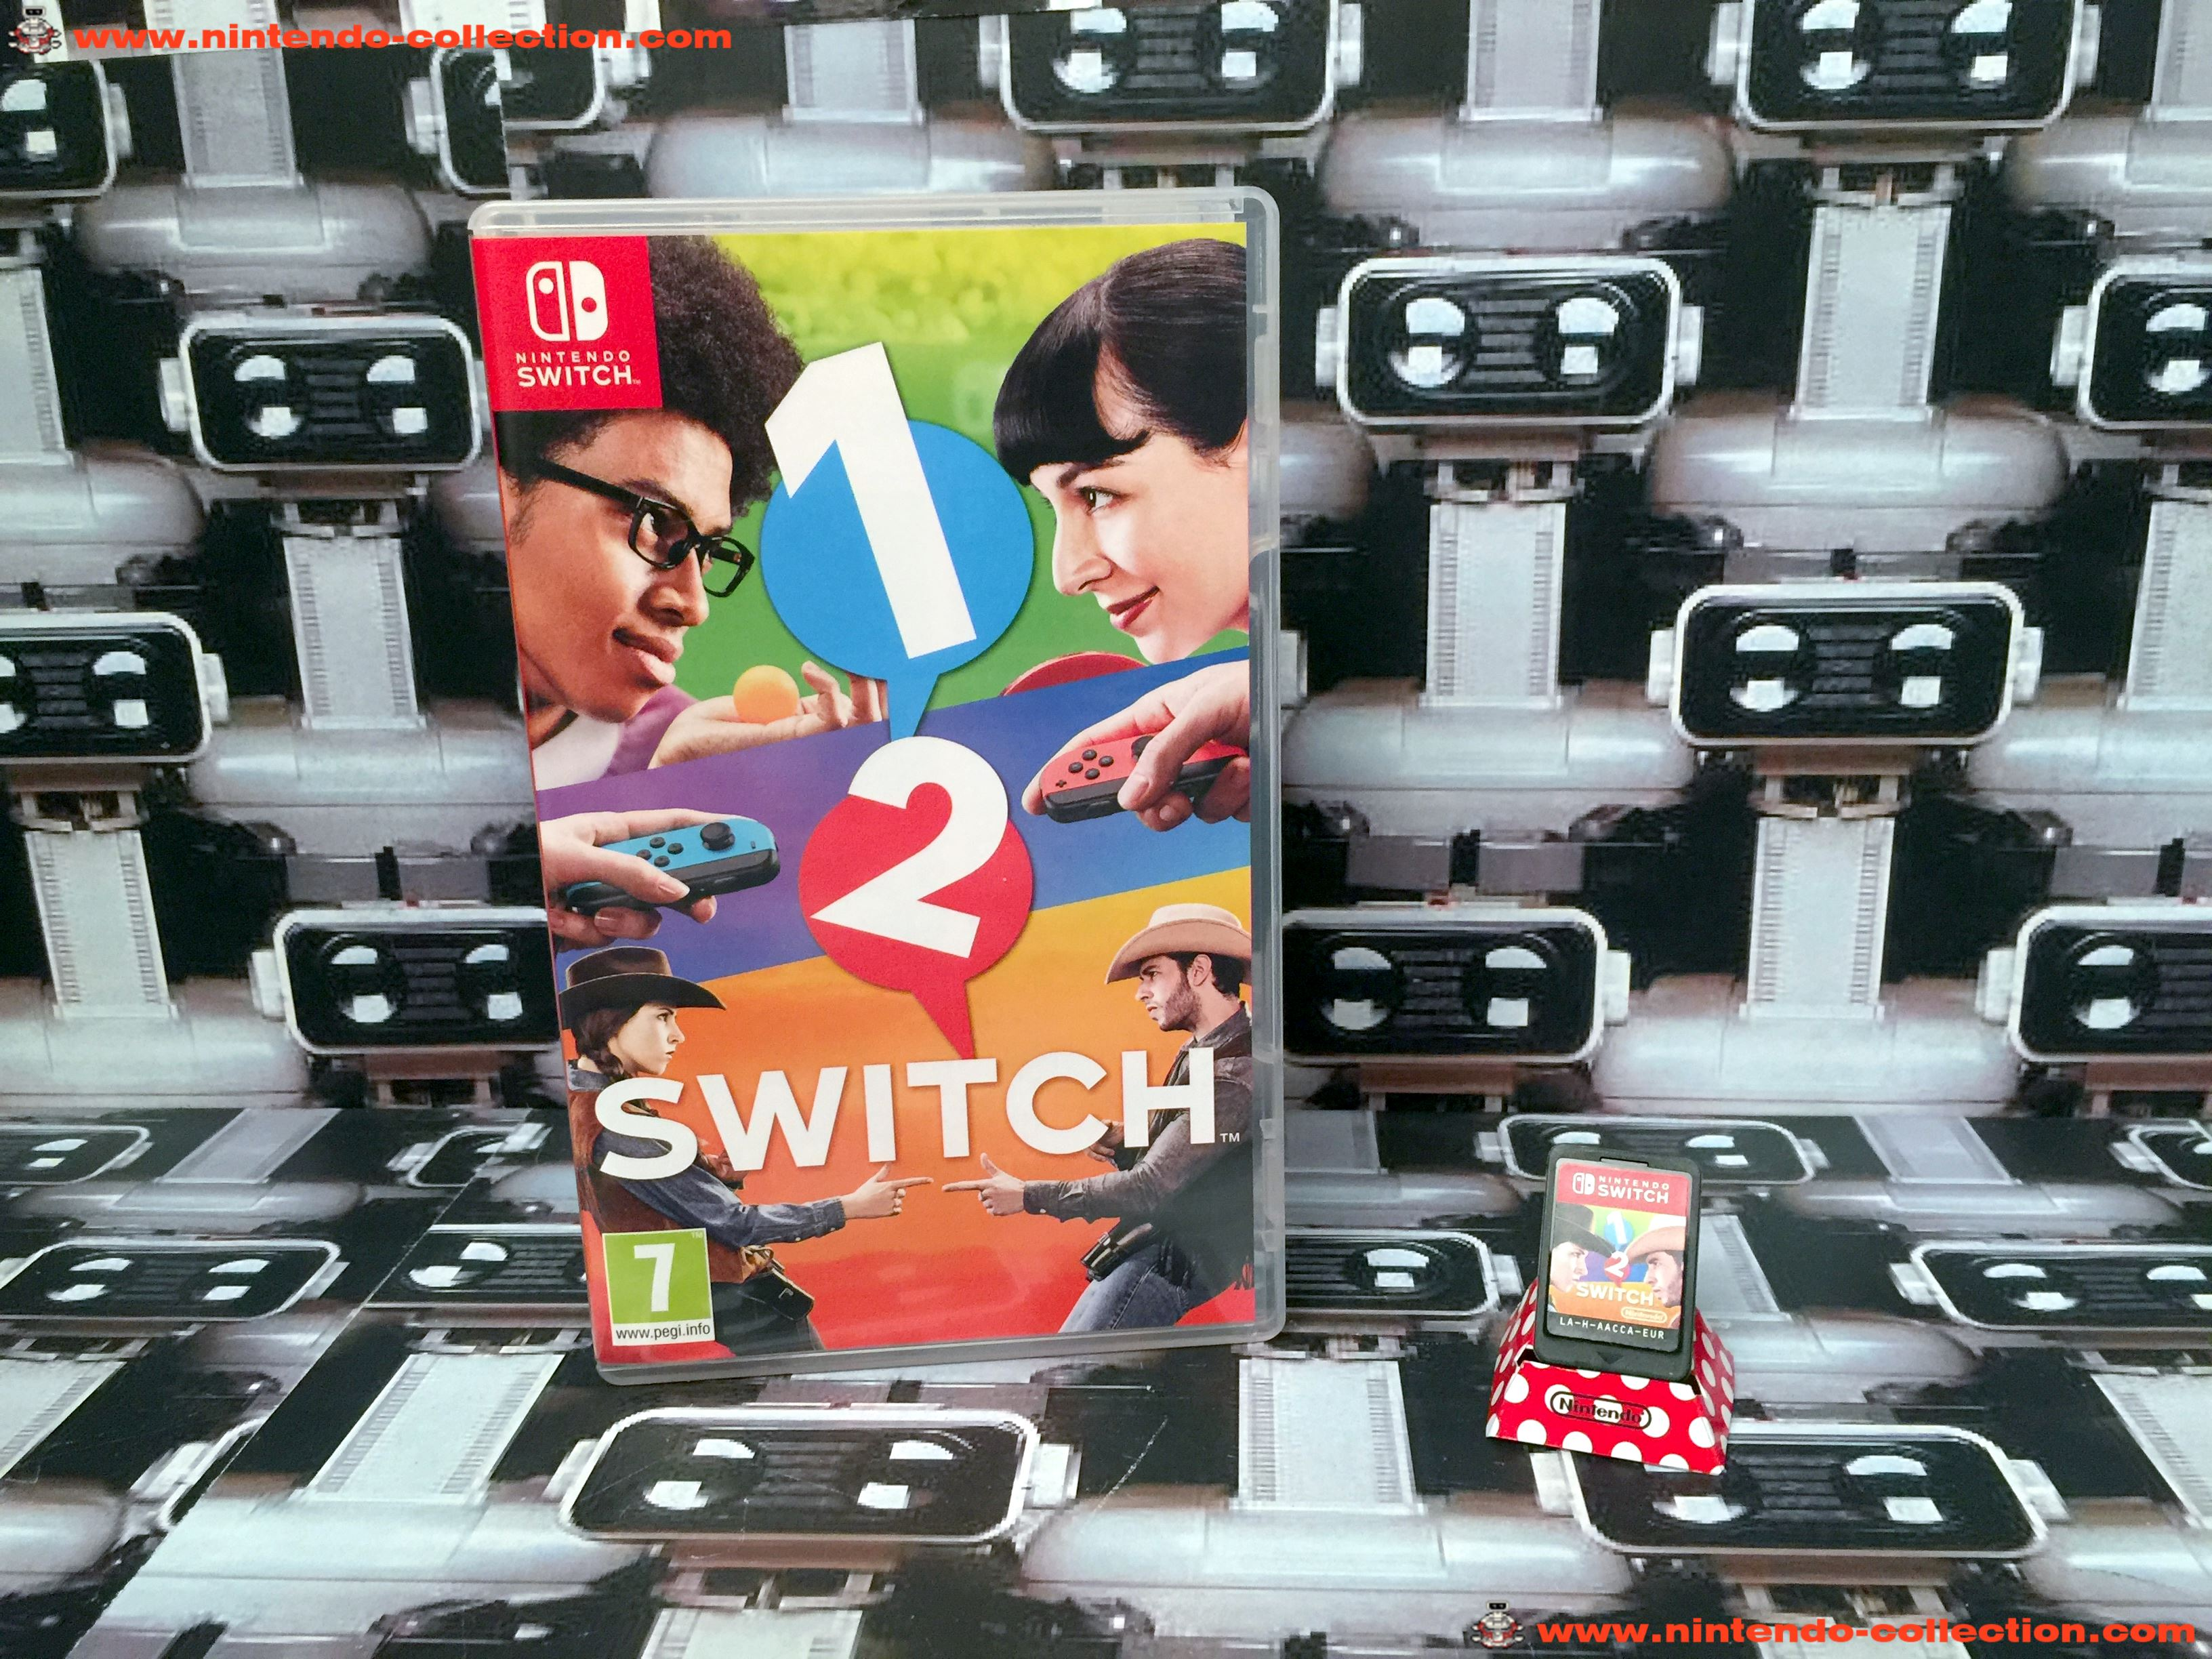 www.nintendo-collection.com - Nintendo Switch Jeux 1 2 Switch